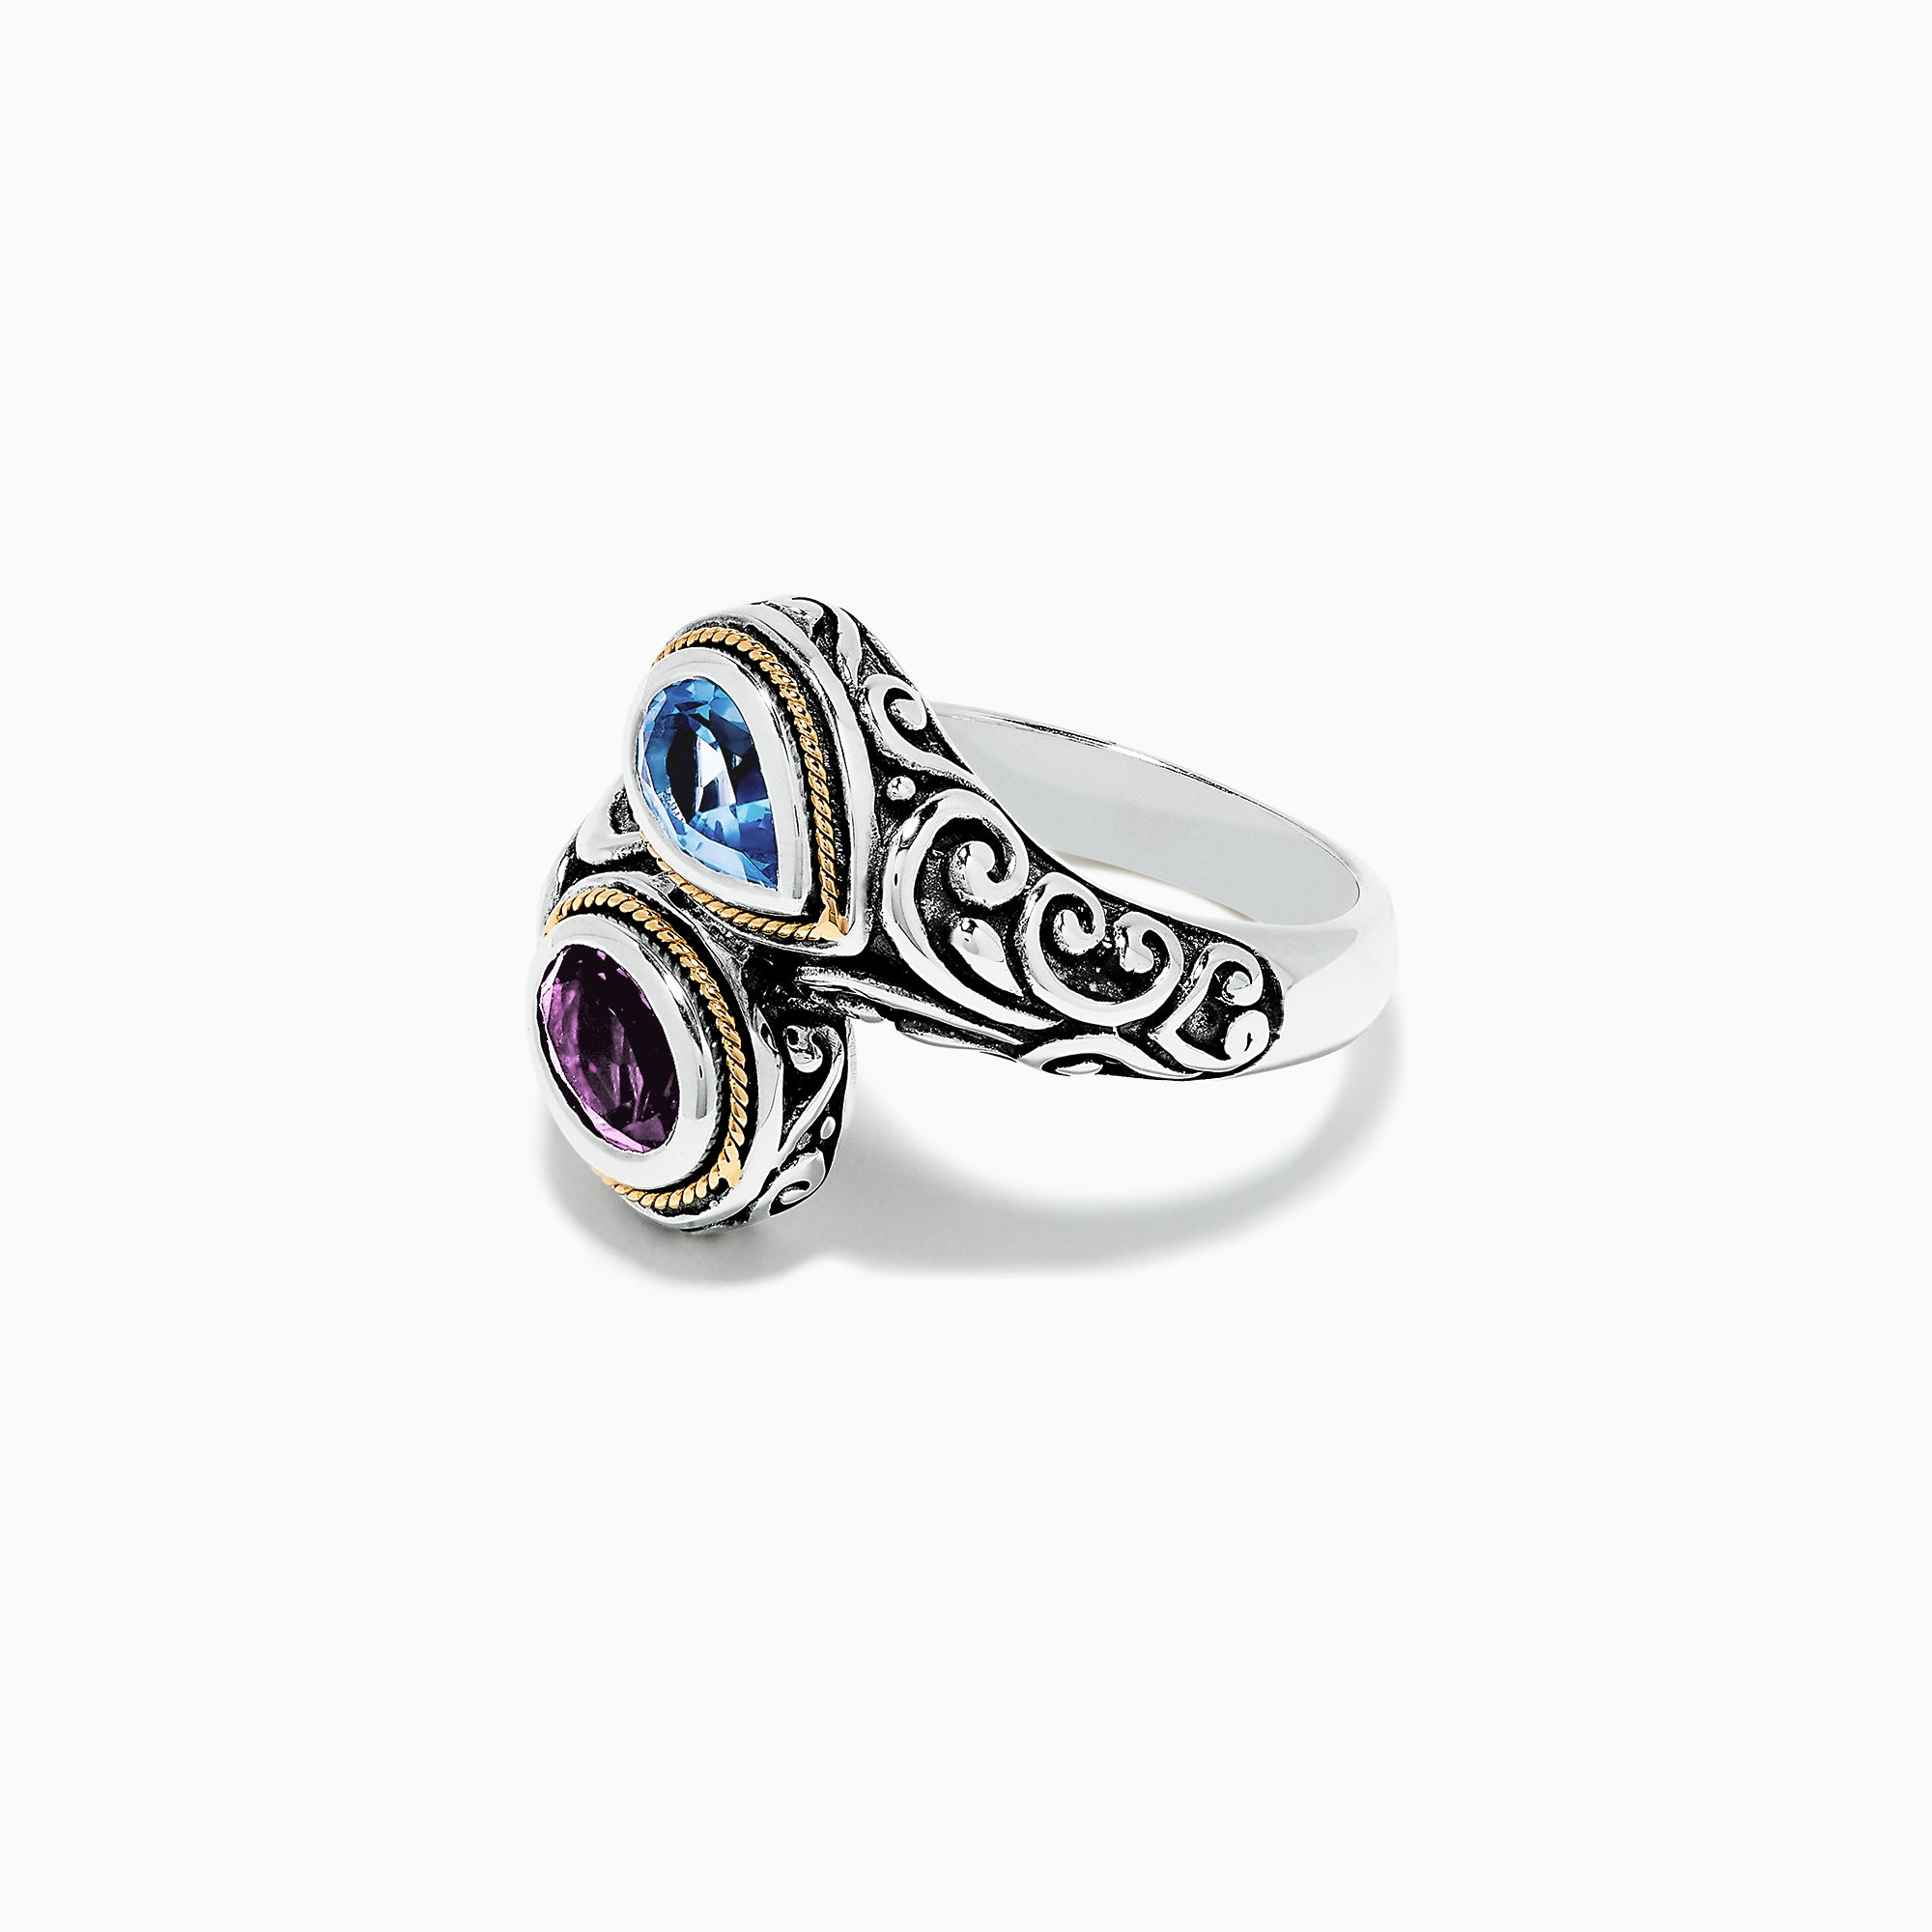 Effy 925 Sterling Silve & 18K Gold Topaz and Amethyst Ring, 1.62 TCW